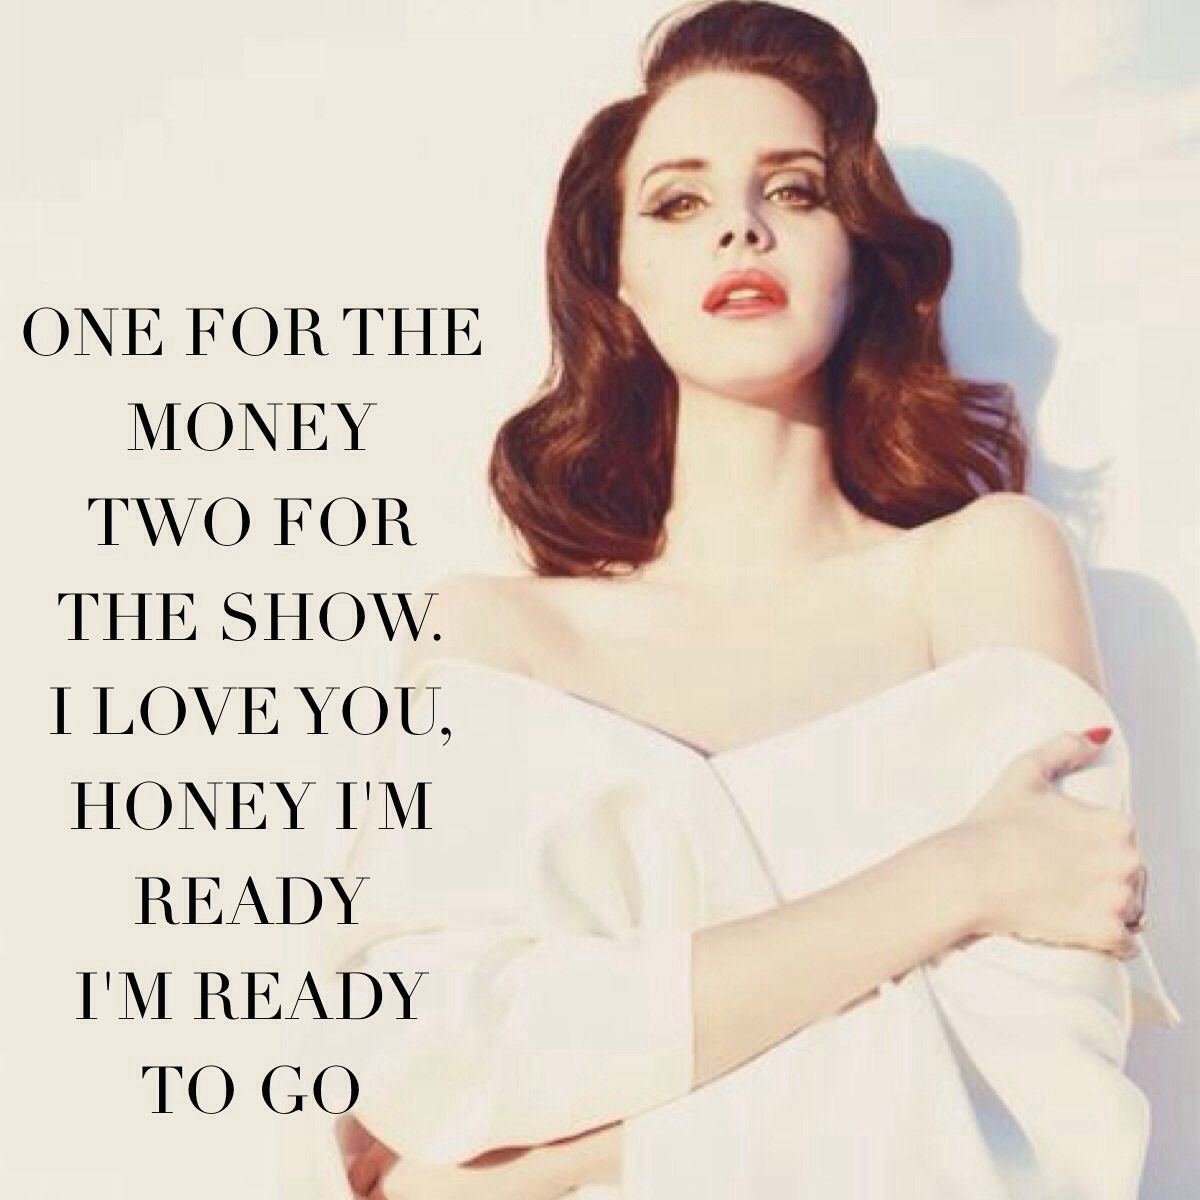 Lana del rey million dollar man one for the money two - One for the money two for the show ...